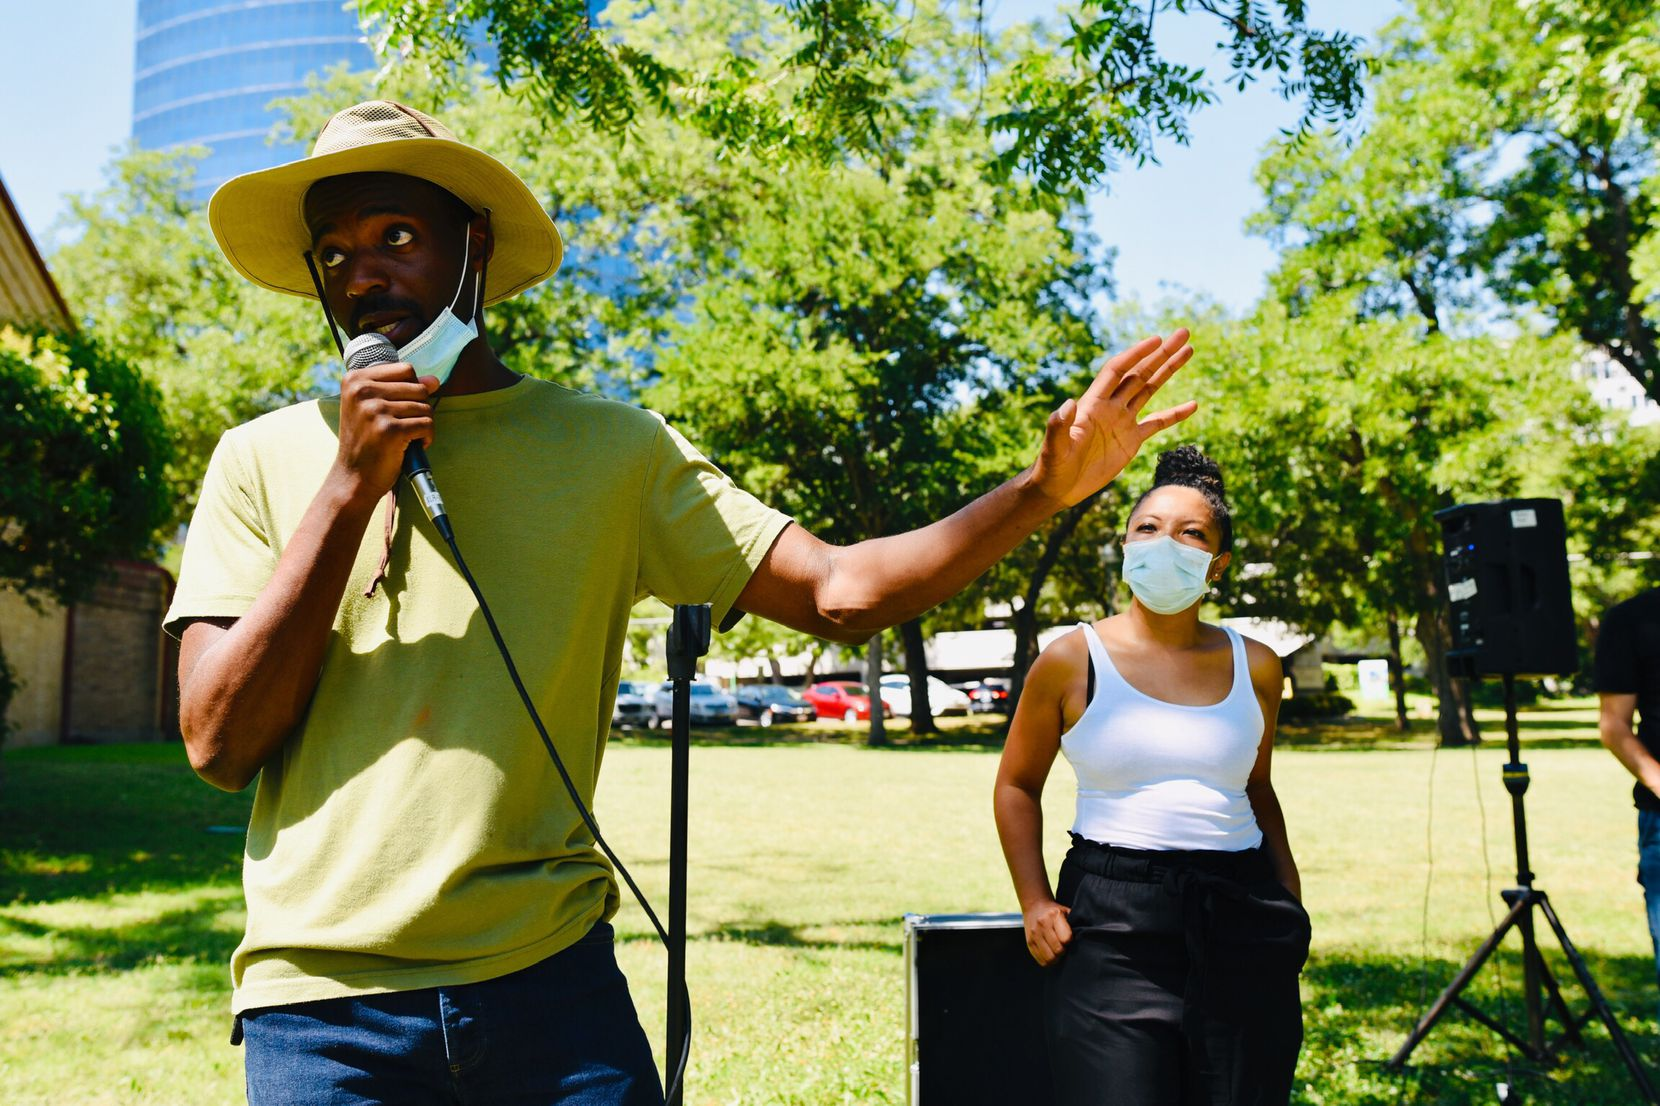 Jeziel Jones (left), head organizer for the Potluck Protest, tells volunteers to run to nearby protesters and provide them with food and water before their march.